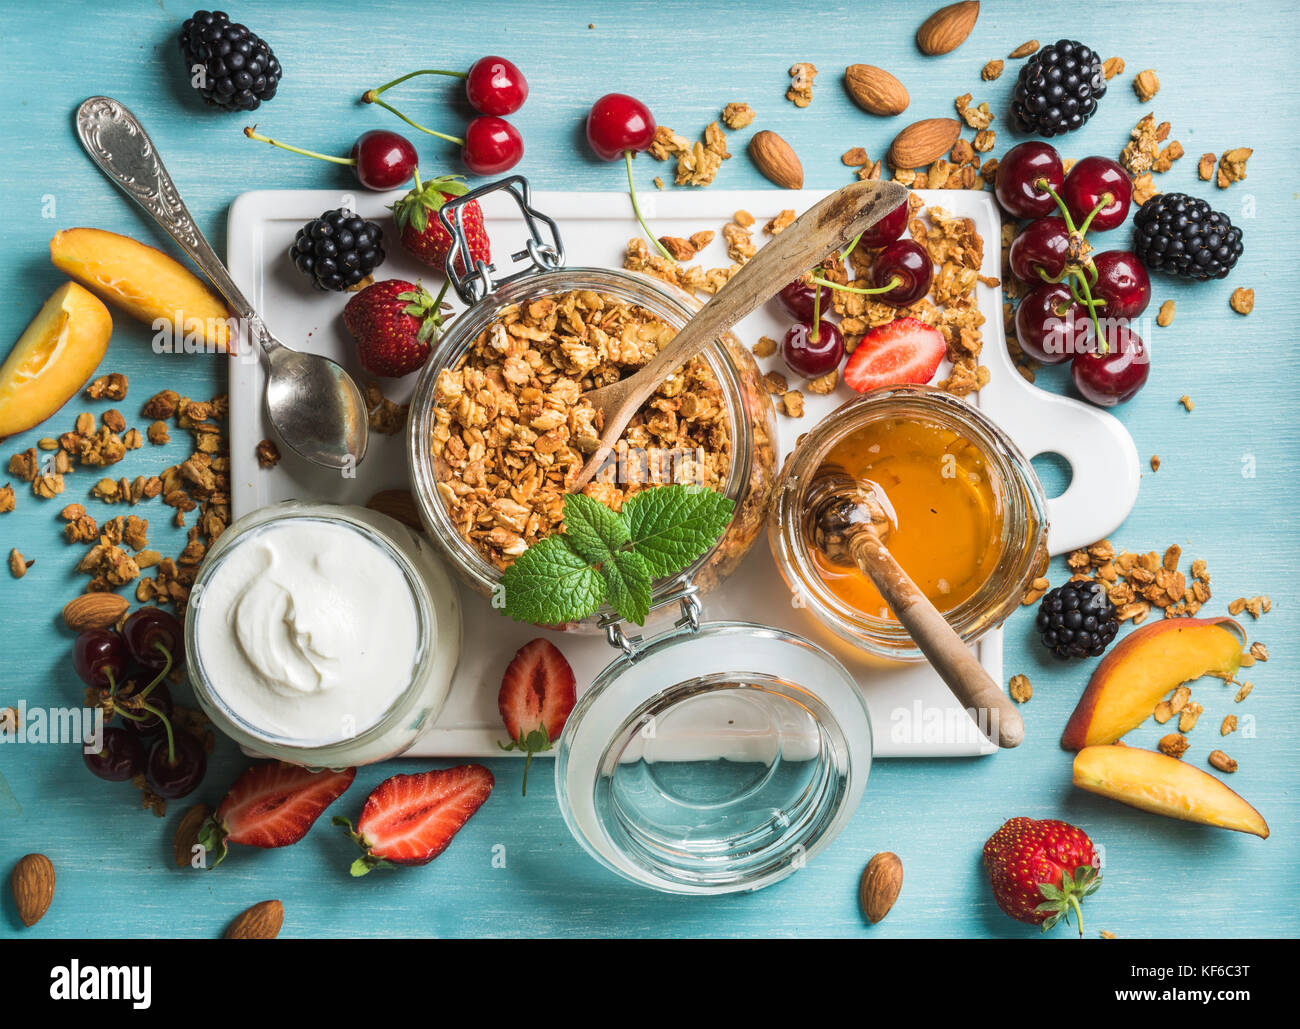 Healthy breakfast ingredients - Stock Image